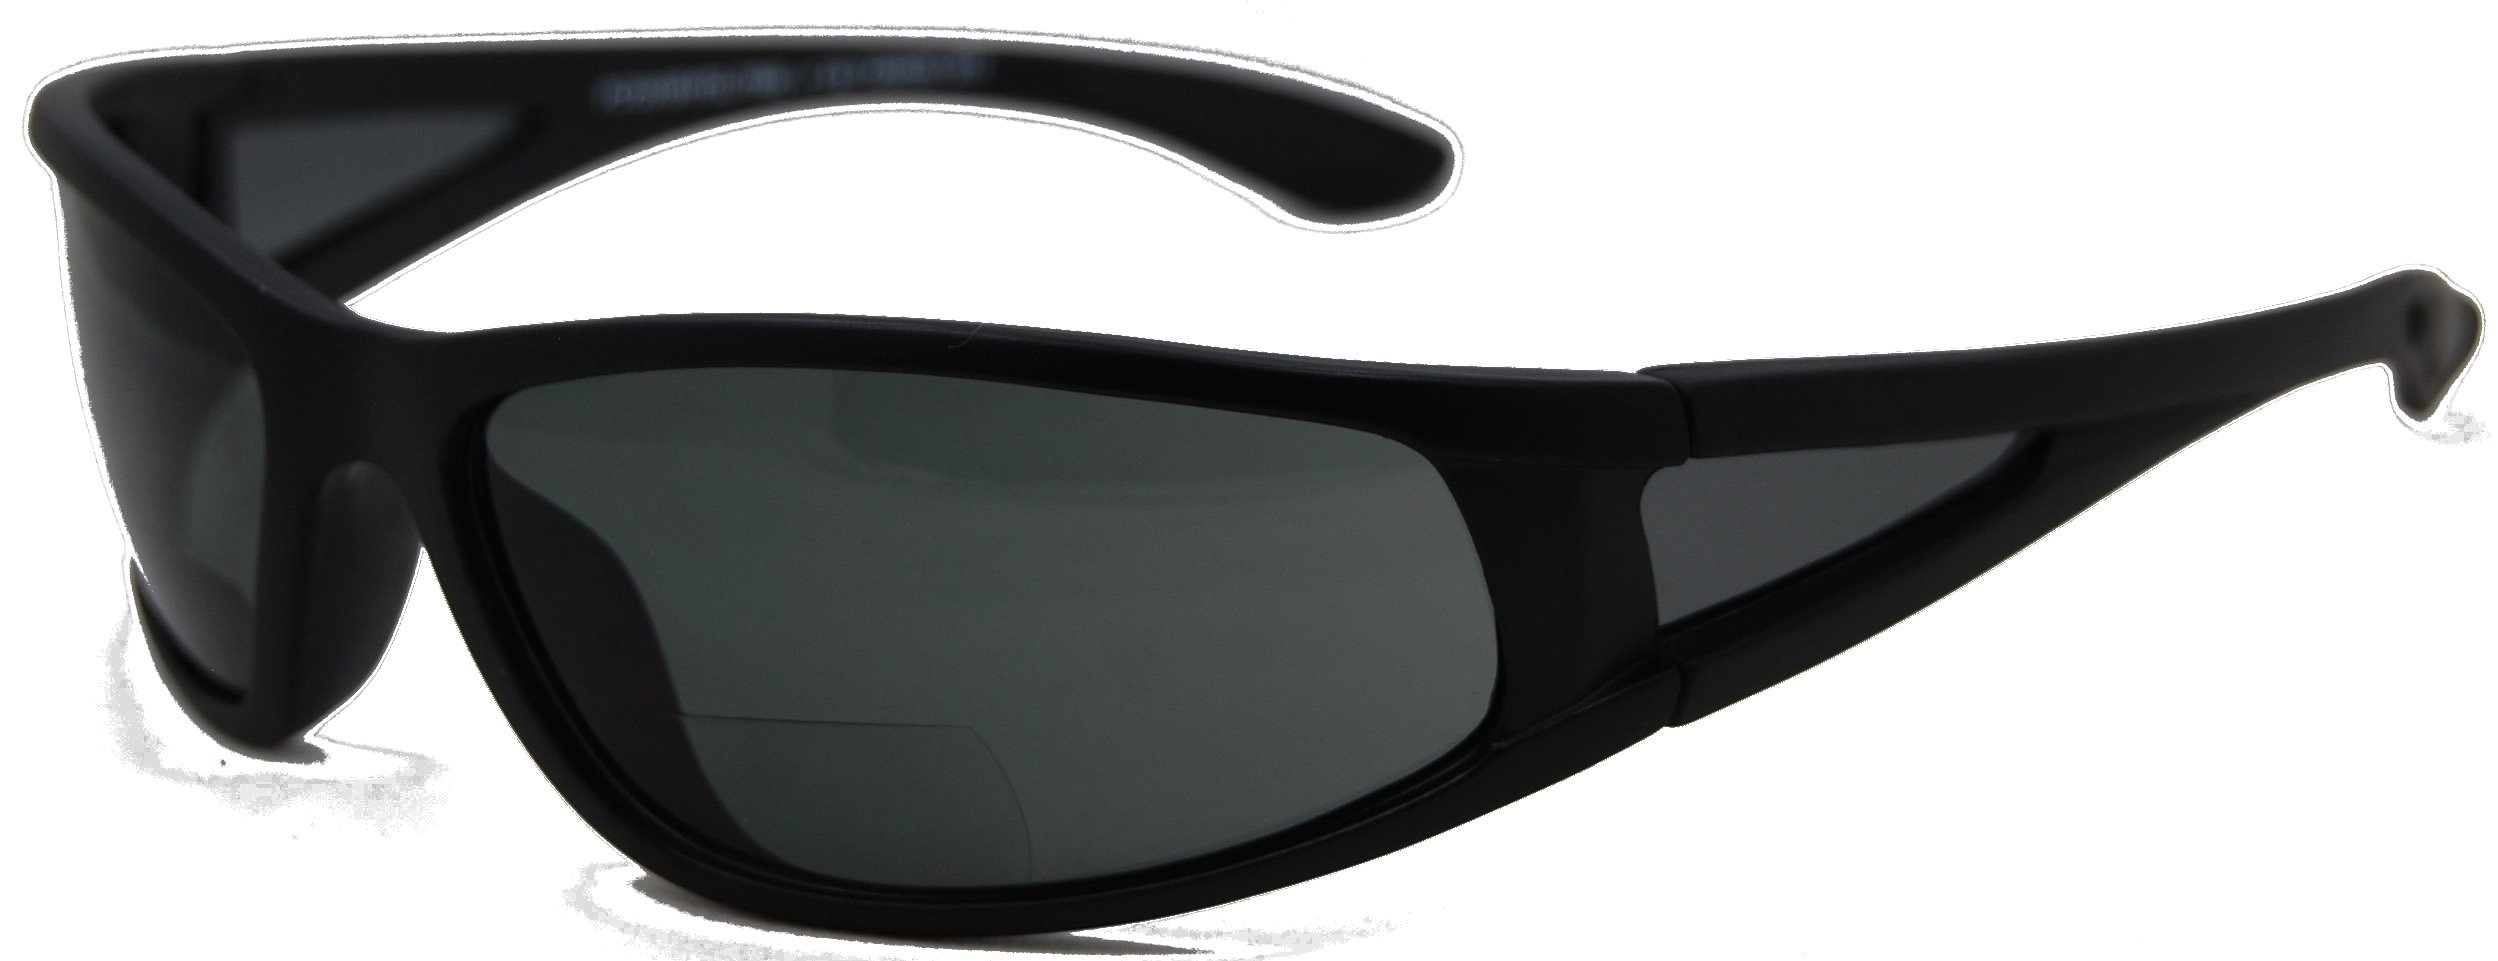 In Style Eyes Del Mar Polarized Wrap Nearly Invisible Line Bifocal Sunglass Readers/Matte Black/2.00 Strength